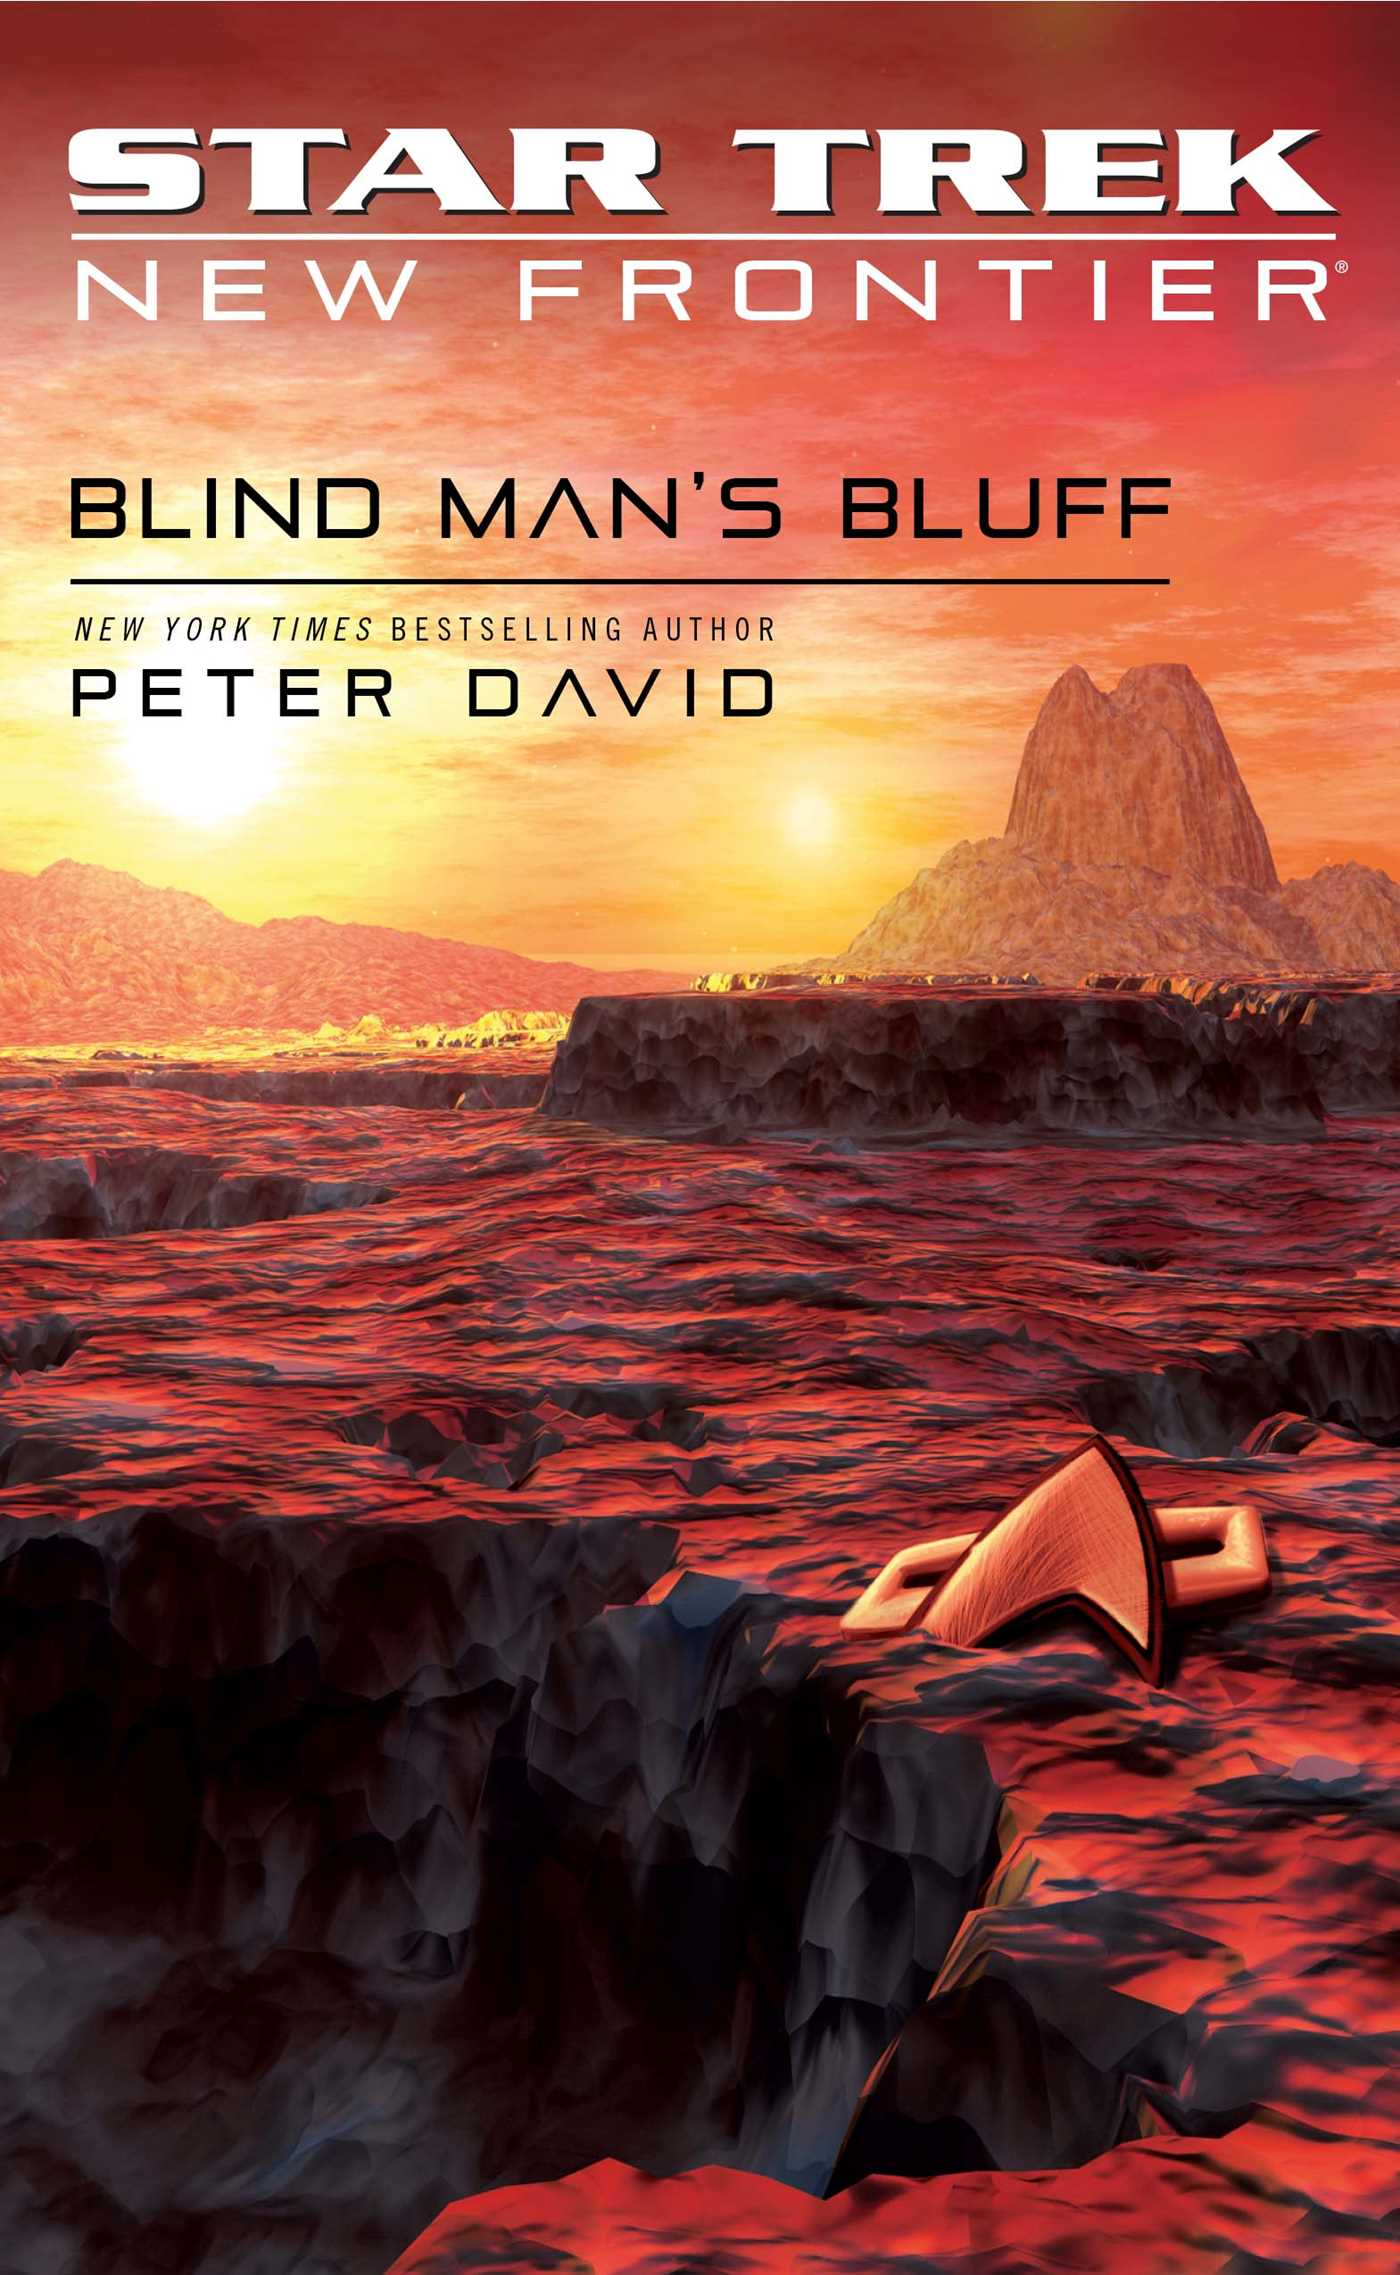 Star-trek-new-frontier-blind-mans-bluff-9780743429603_hr